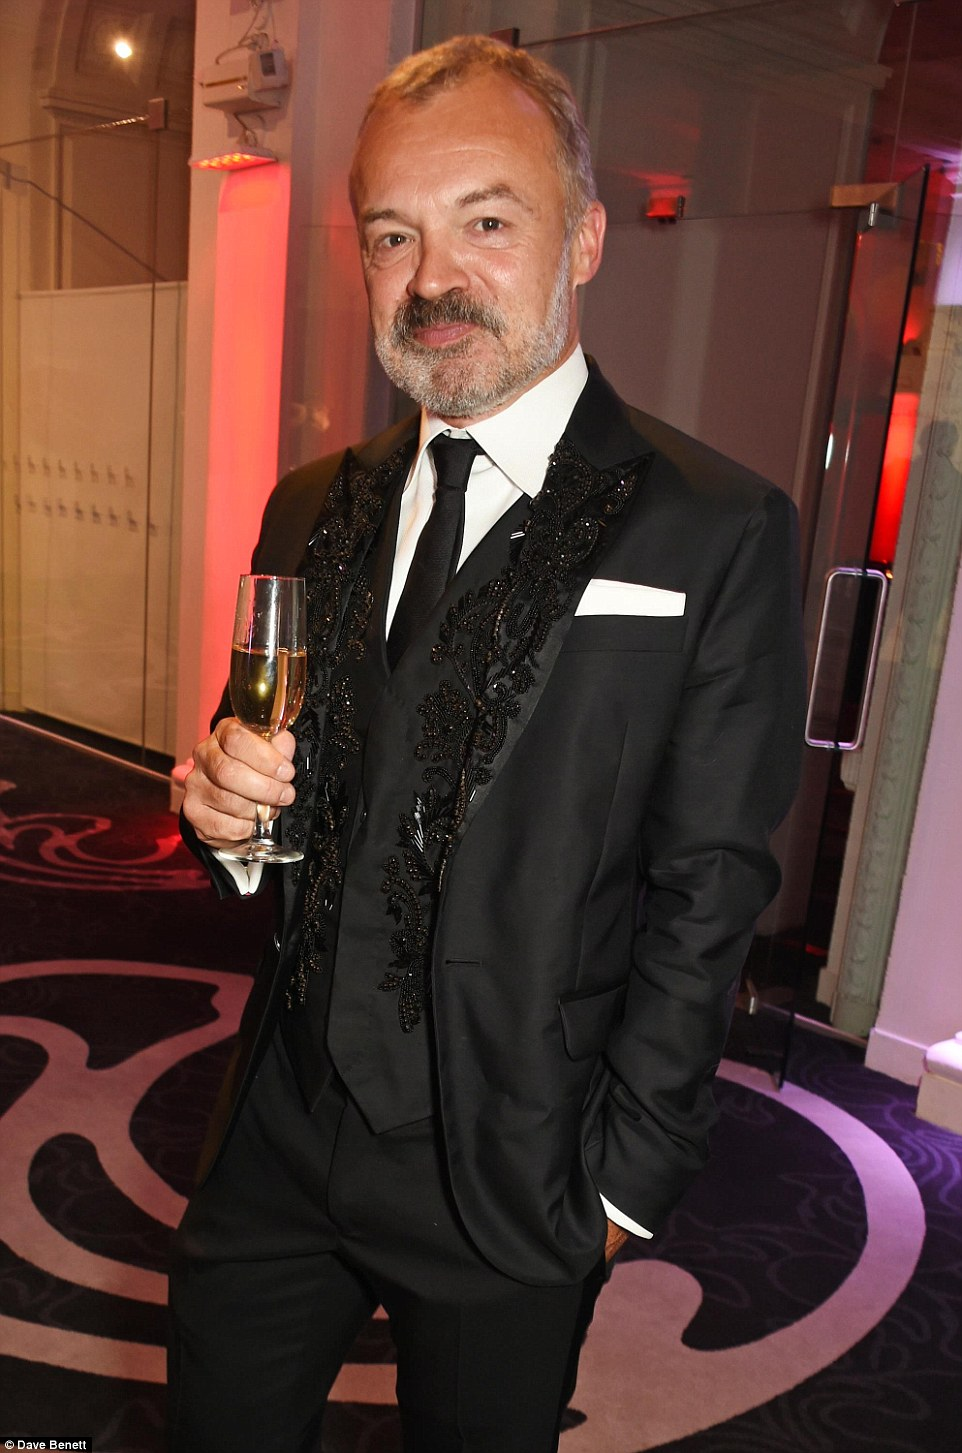 Nothing to see here: Graham Norton was looking dazzling in a three piece suit adorned with beading across the breast and lapels